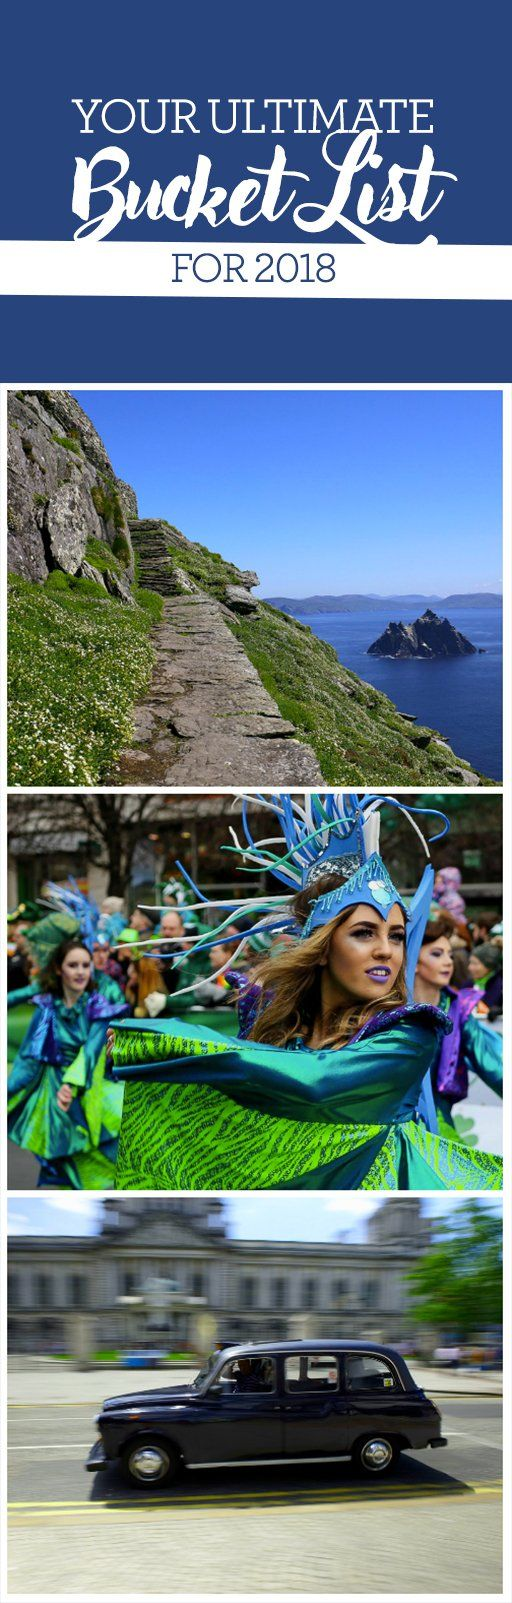 """""""The world is a book and those who do not travel read only one page,"""" so said St Augustine of Hippo. We couldn't agree more, so make travel your top priority for 2018. Here in Ireland, you can follow the cast of Star Wars to the Wild Atlantic Way, spend St Patrick's Day in one of our proud cities, or take a unique Black Taxi Tour around bustling Belfast. Open your next chapter in Ireland this year!"""